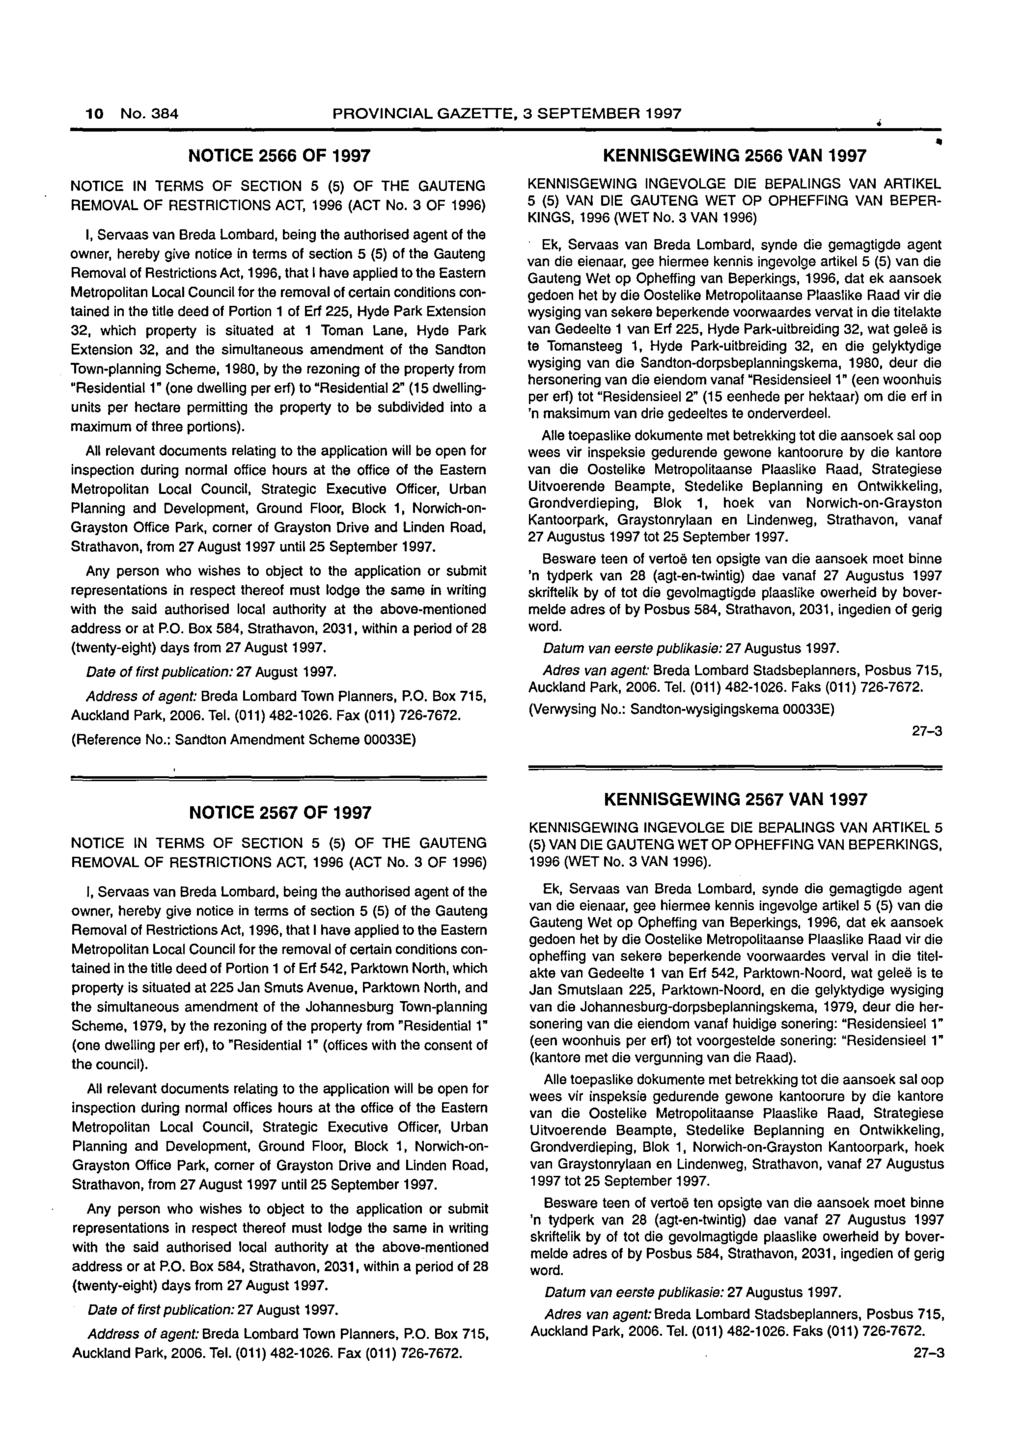 10 No. PROVINCIAL GAZETTE, 3 SEPTEMBER 1997 NOTICE 2566 OF 1997 NOTICE IN TERMS OF SECTION 5 (5) OF THE GAUTENG REMOVAL OF RESTRICTIONS ACT, 1996 (ACT No.